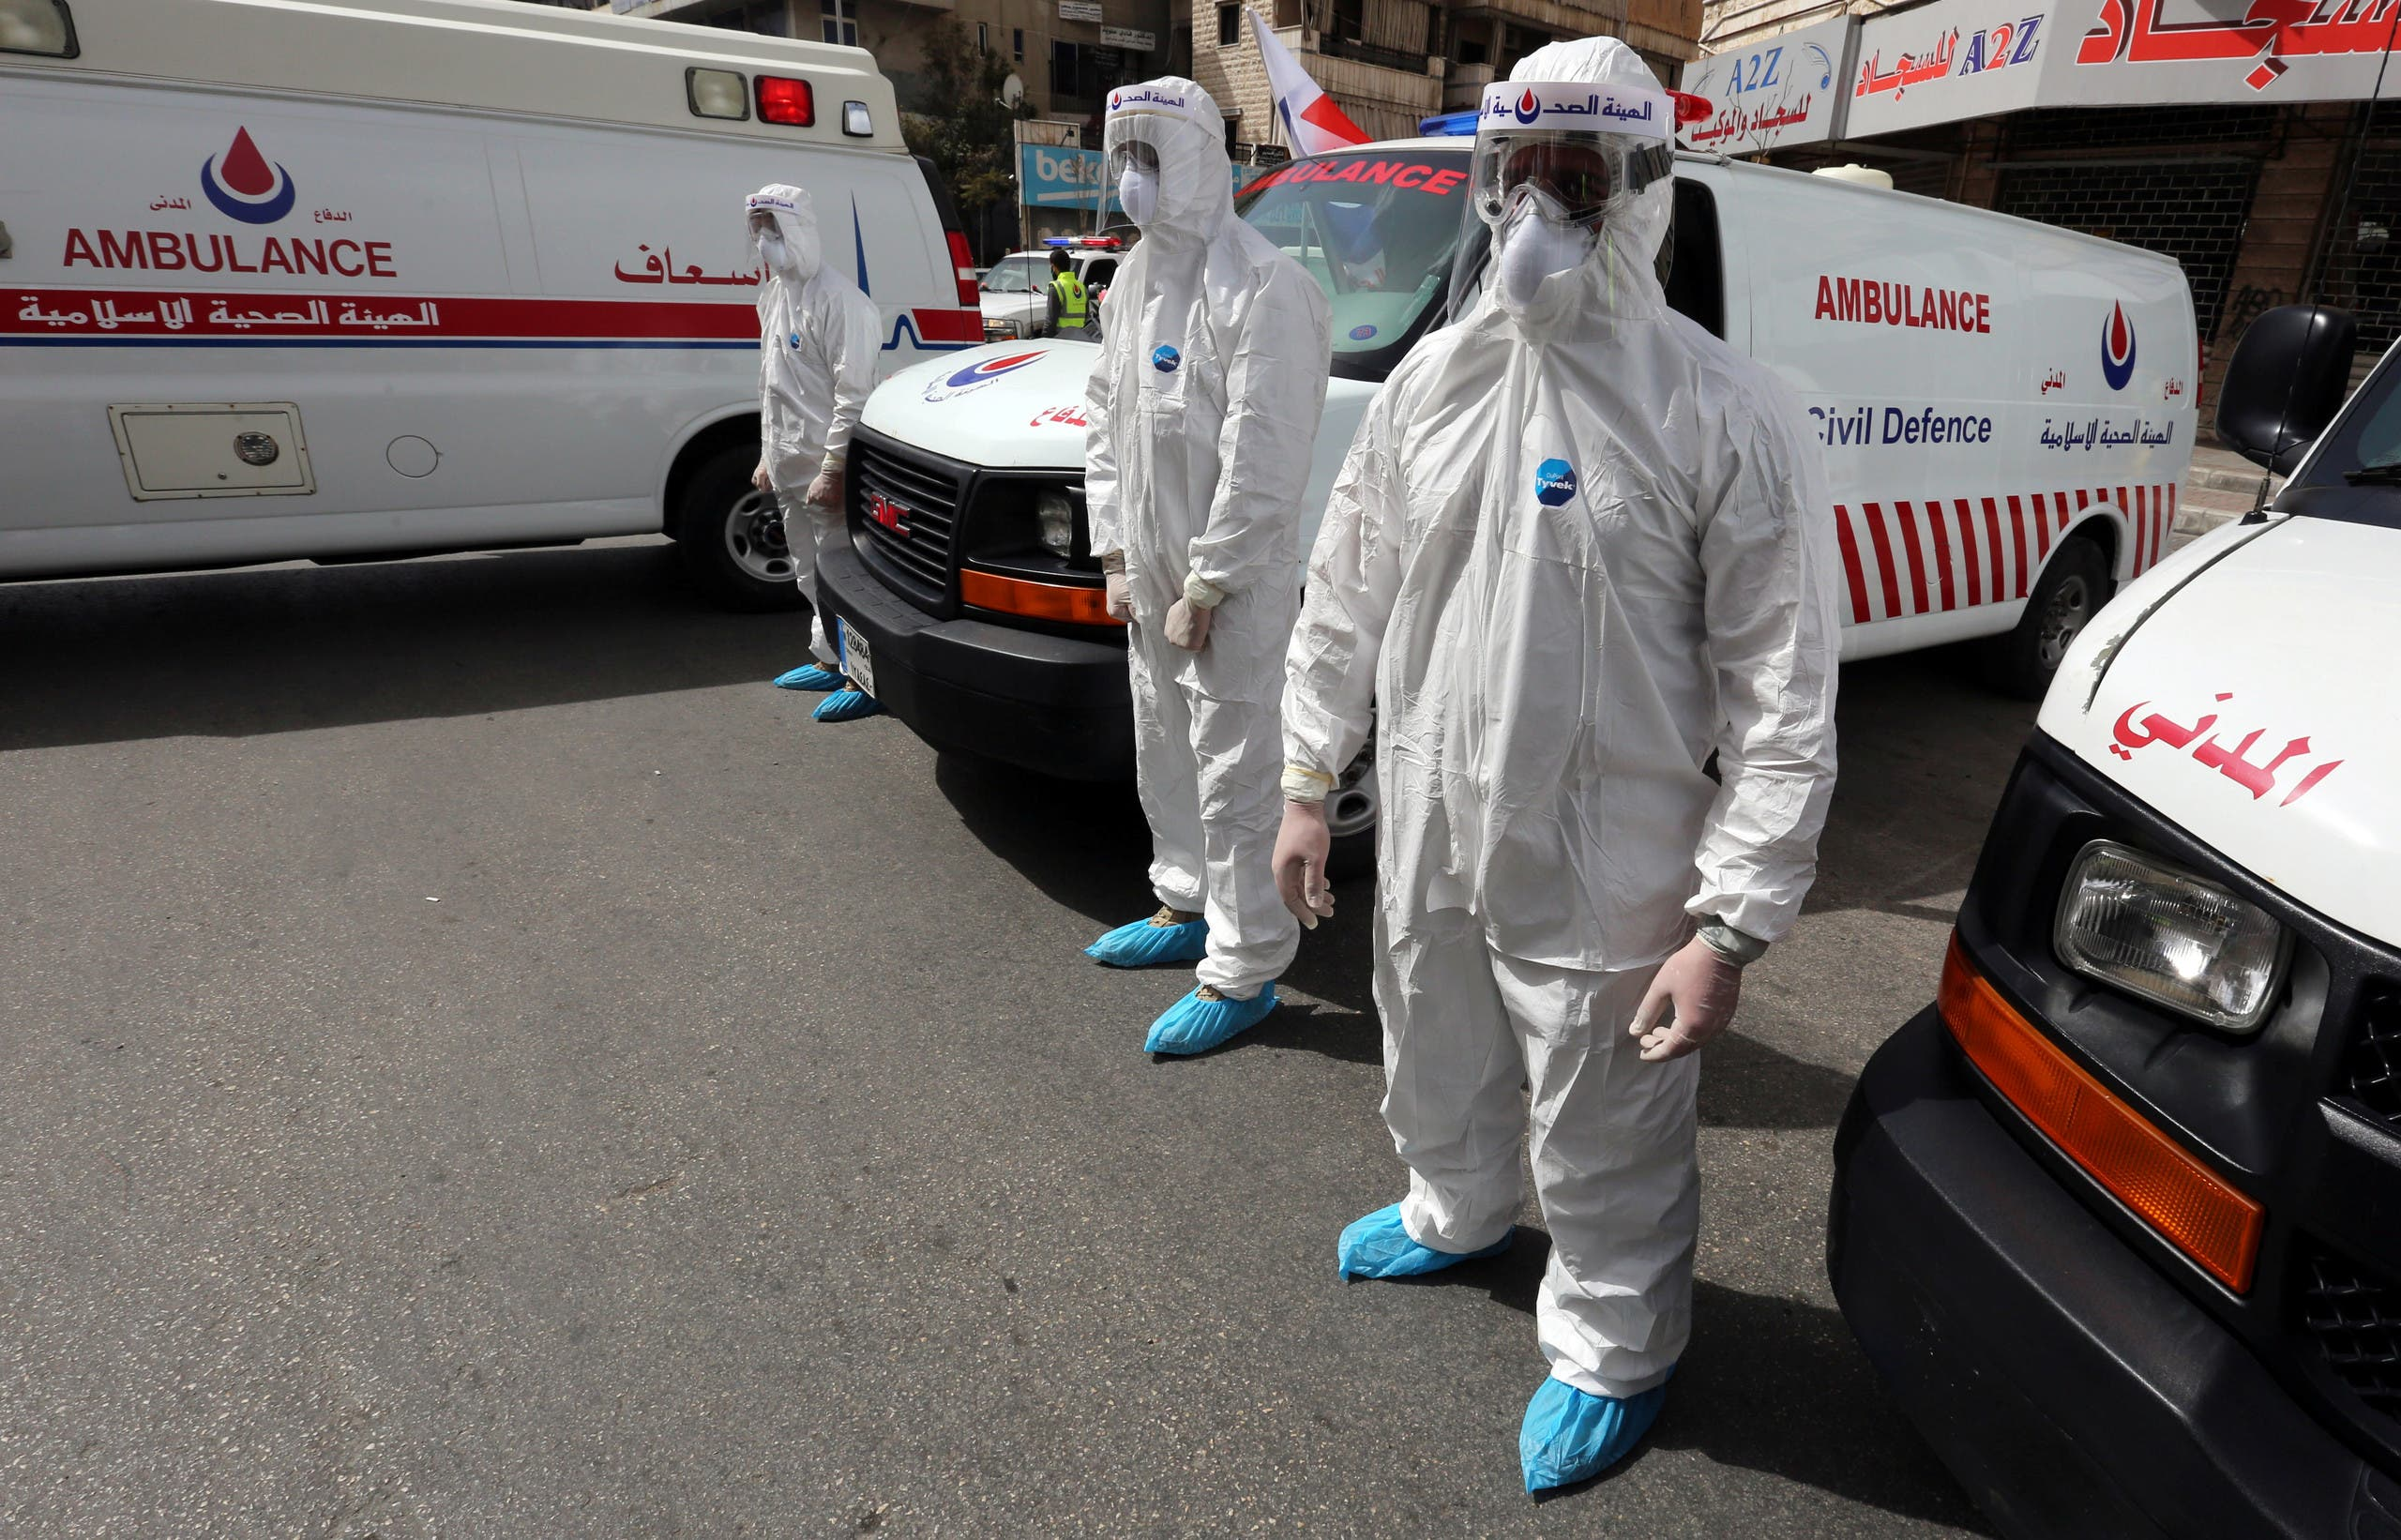 Islamic health unit personnel wearing protective gear stand near ambulances as part of preparations to help tackling the coronavirus disease (COVID-19) outbreak, during a media tour organised by Hezbollah officials in Beirut's southern suburb. (Reuters)